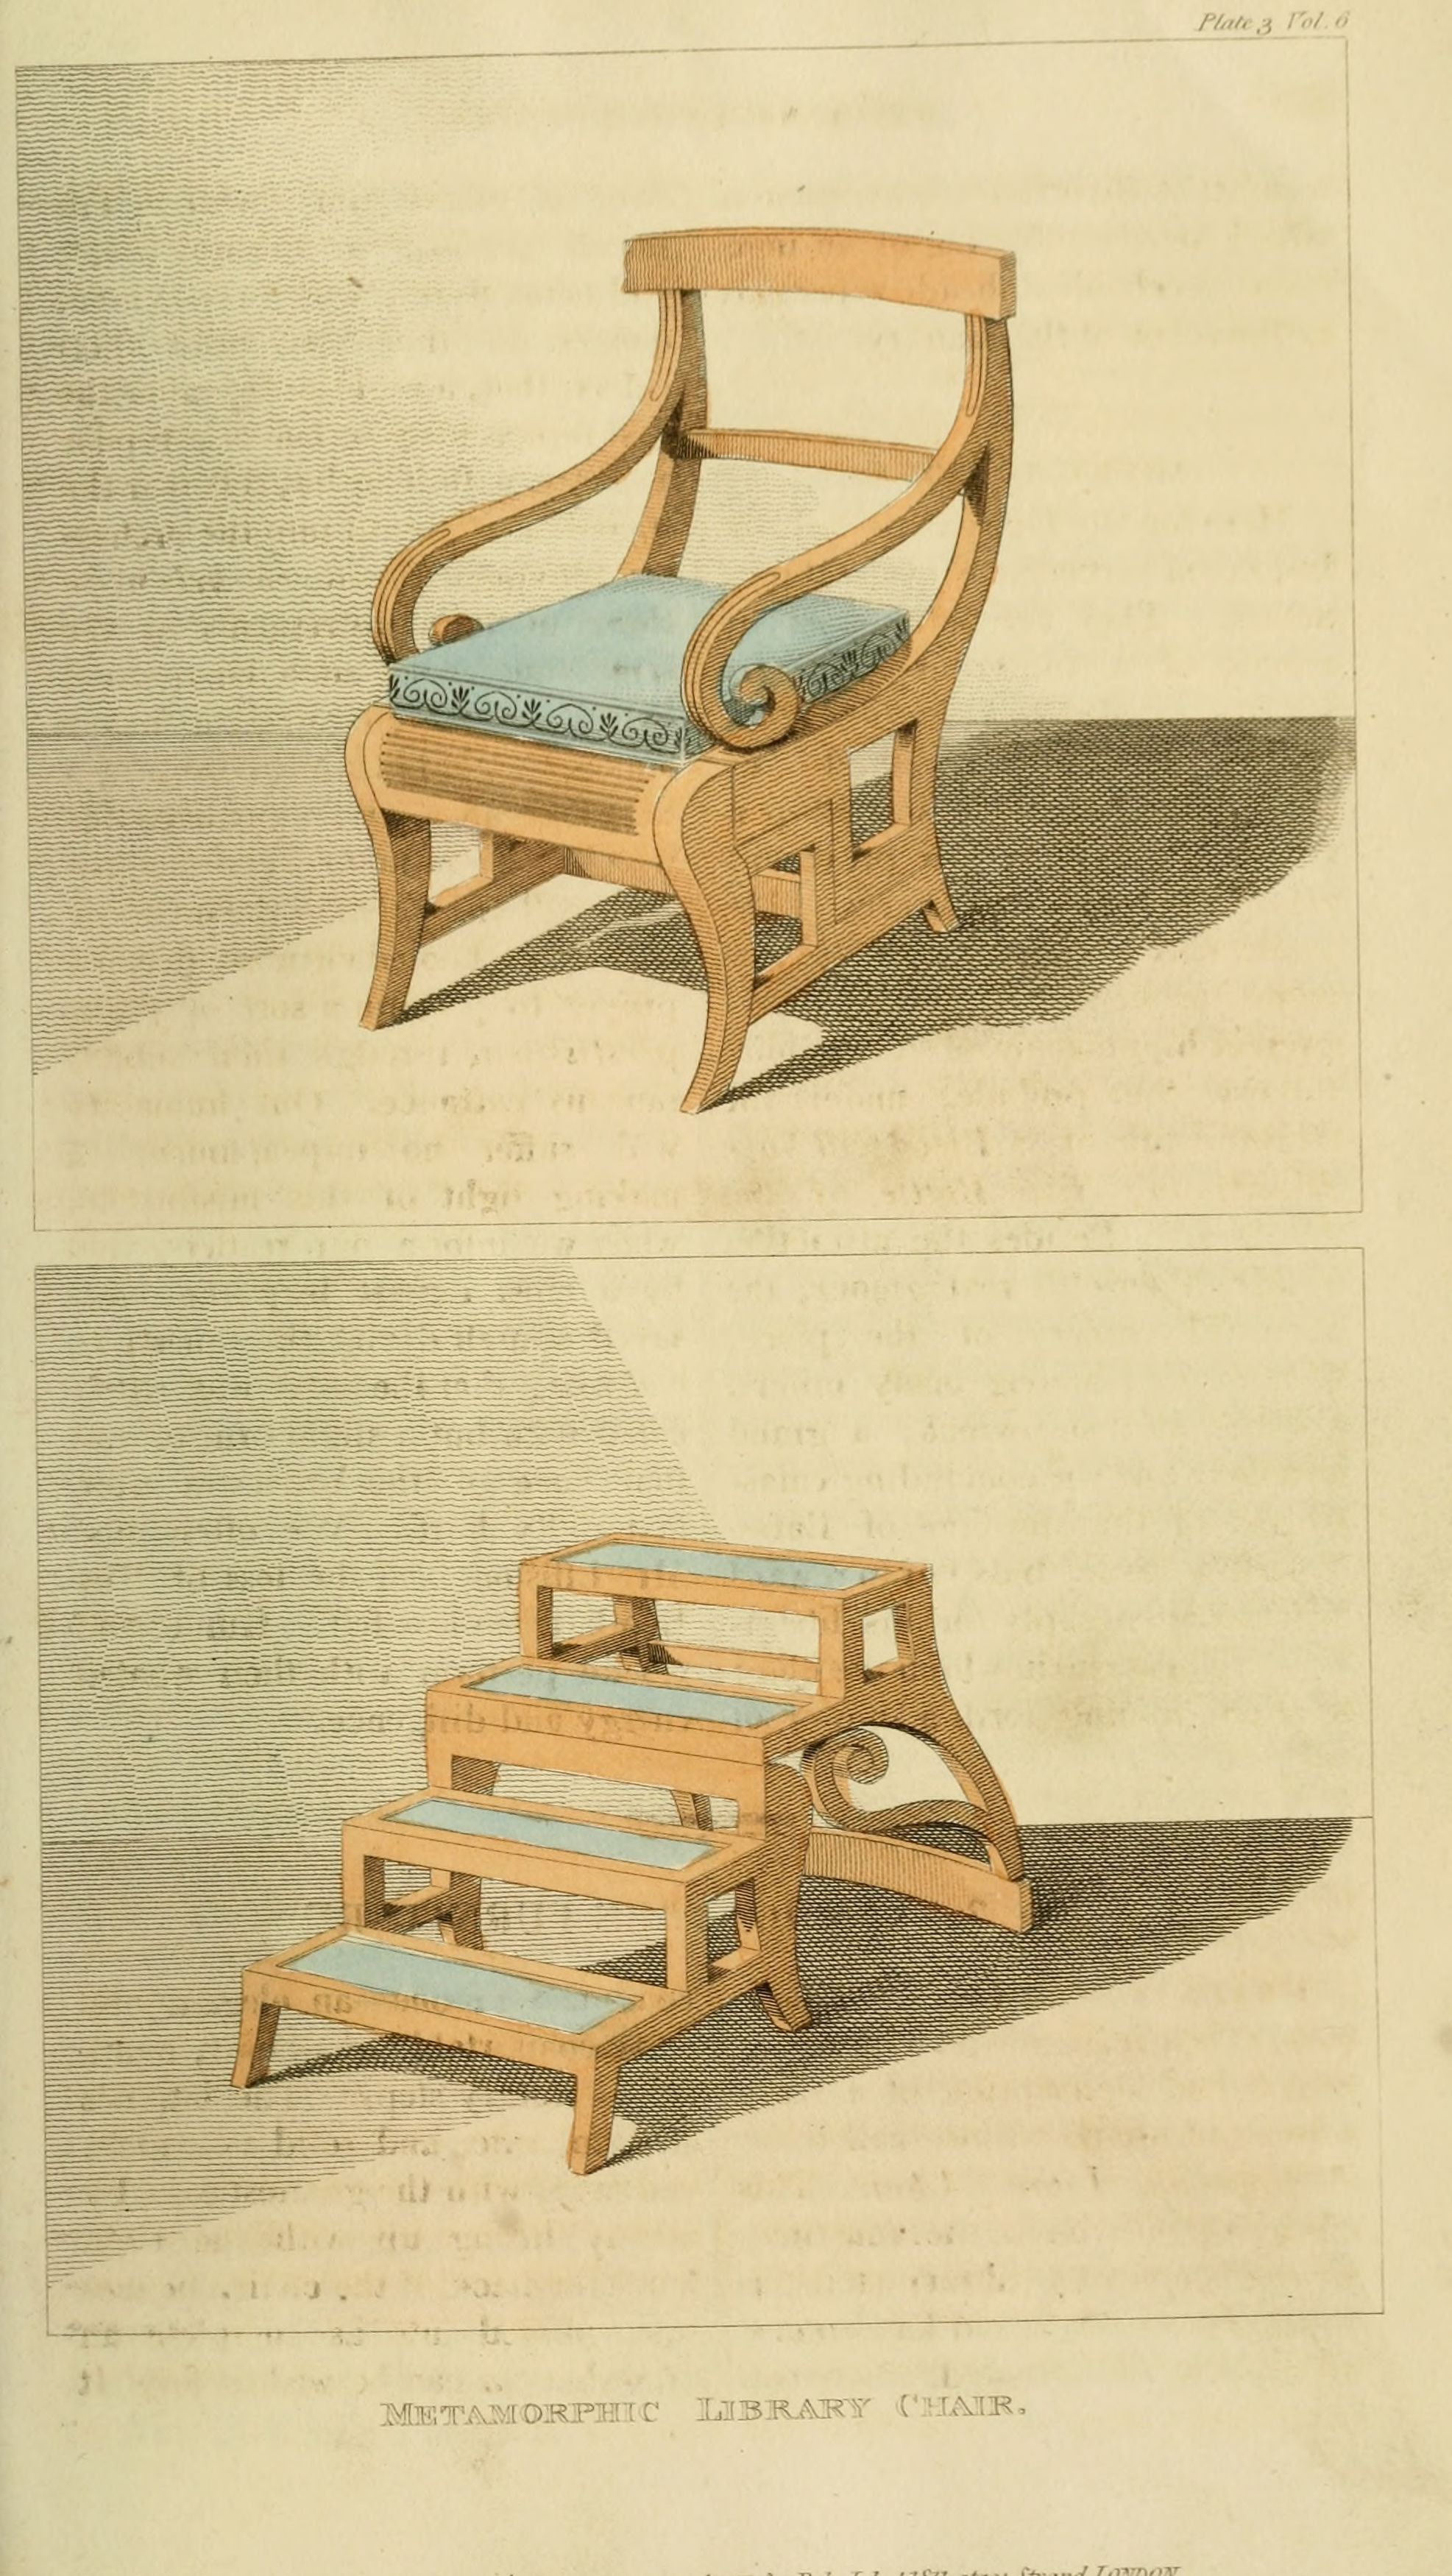 Public Domain Images Vintage Furniture Design Inspiration Circa